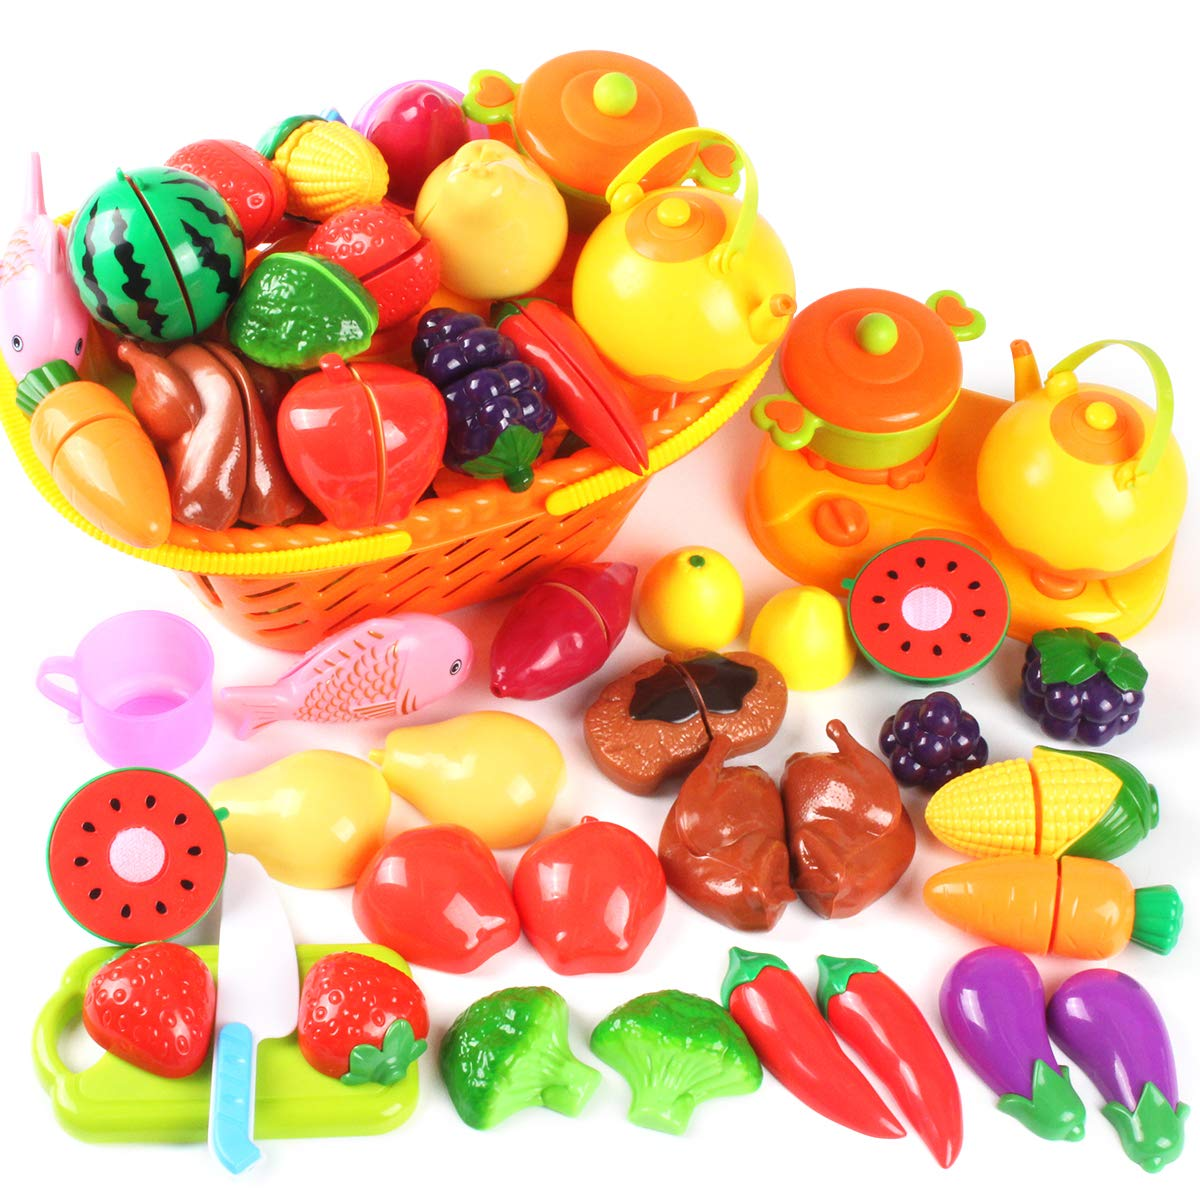 AMOSTING Kids Pretend Food Play Kitchen Toys for Kids, Plastic Food Fruit  Cutting Set for Kids Play Kitchen Set, 37 Piece Kitchen Play Food for Kids  ...